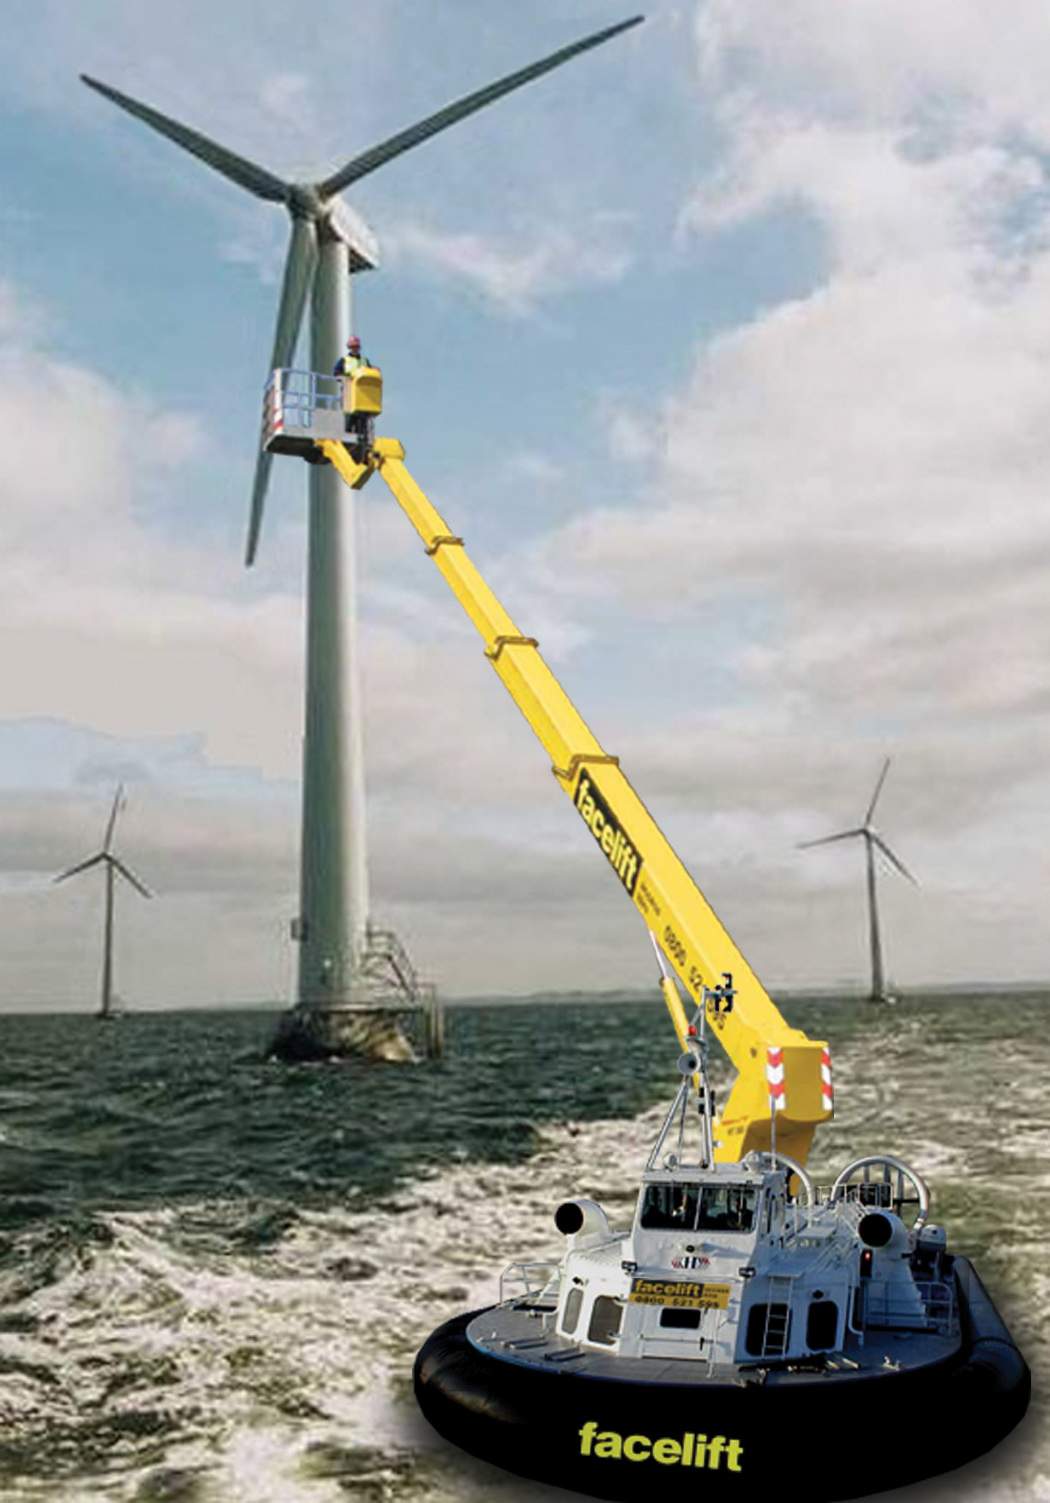 Operation and maintenance costs of wind generated power